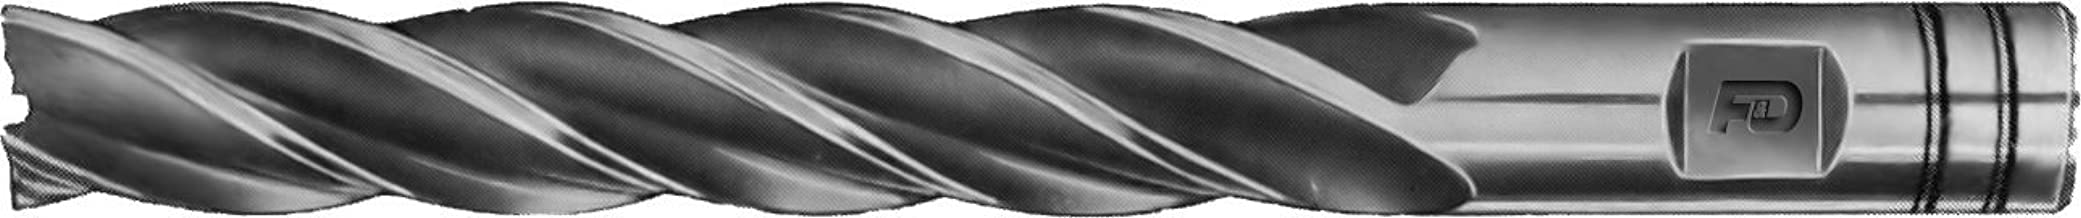 3.625 Overall Length 1.625 Flute Length F/&D Tool Company 18116-F326 Multiple Flute End Mill Single End 3//4 Mill Diameter 1//2 Shank Diameter High Speed Steel 4 Number of Flutes